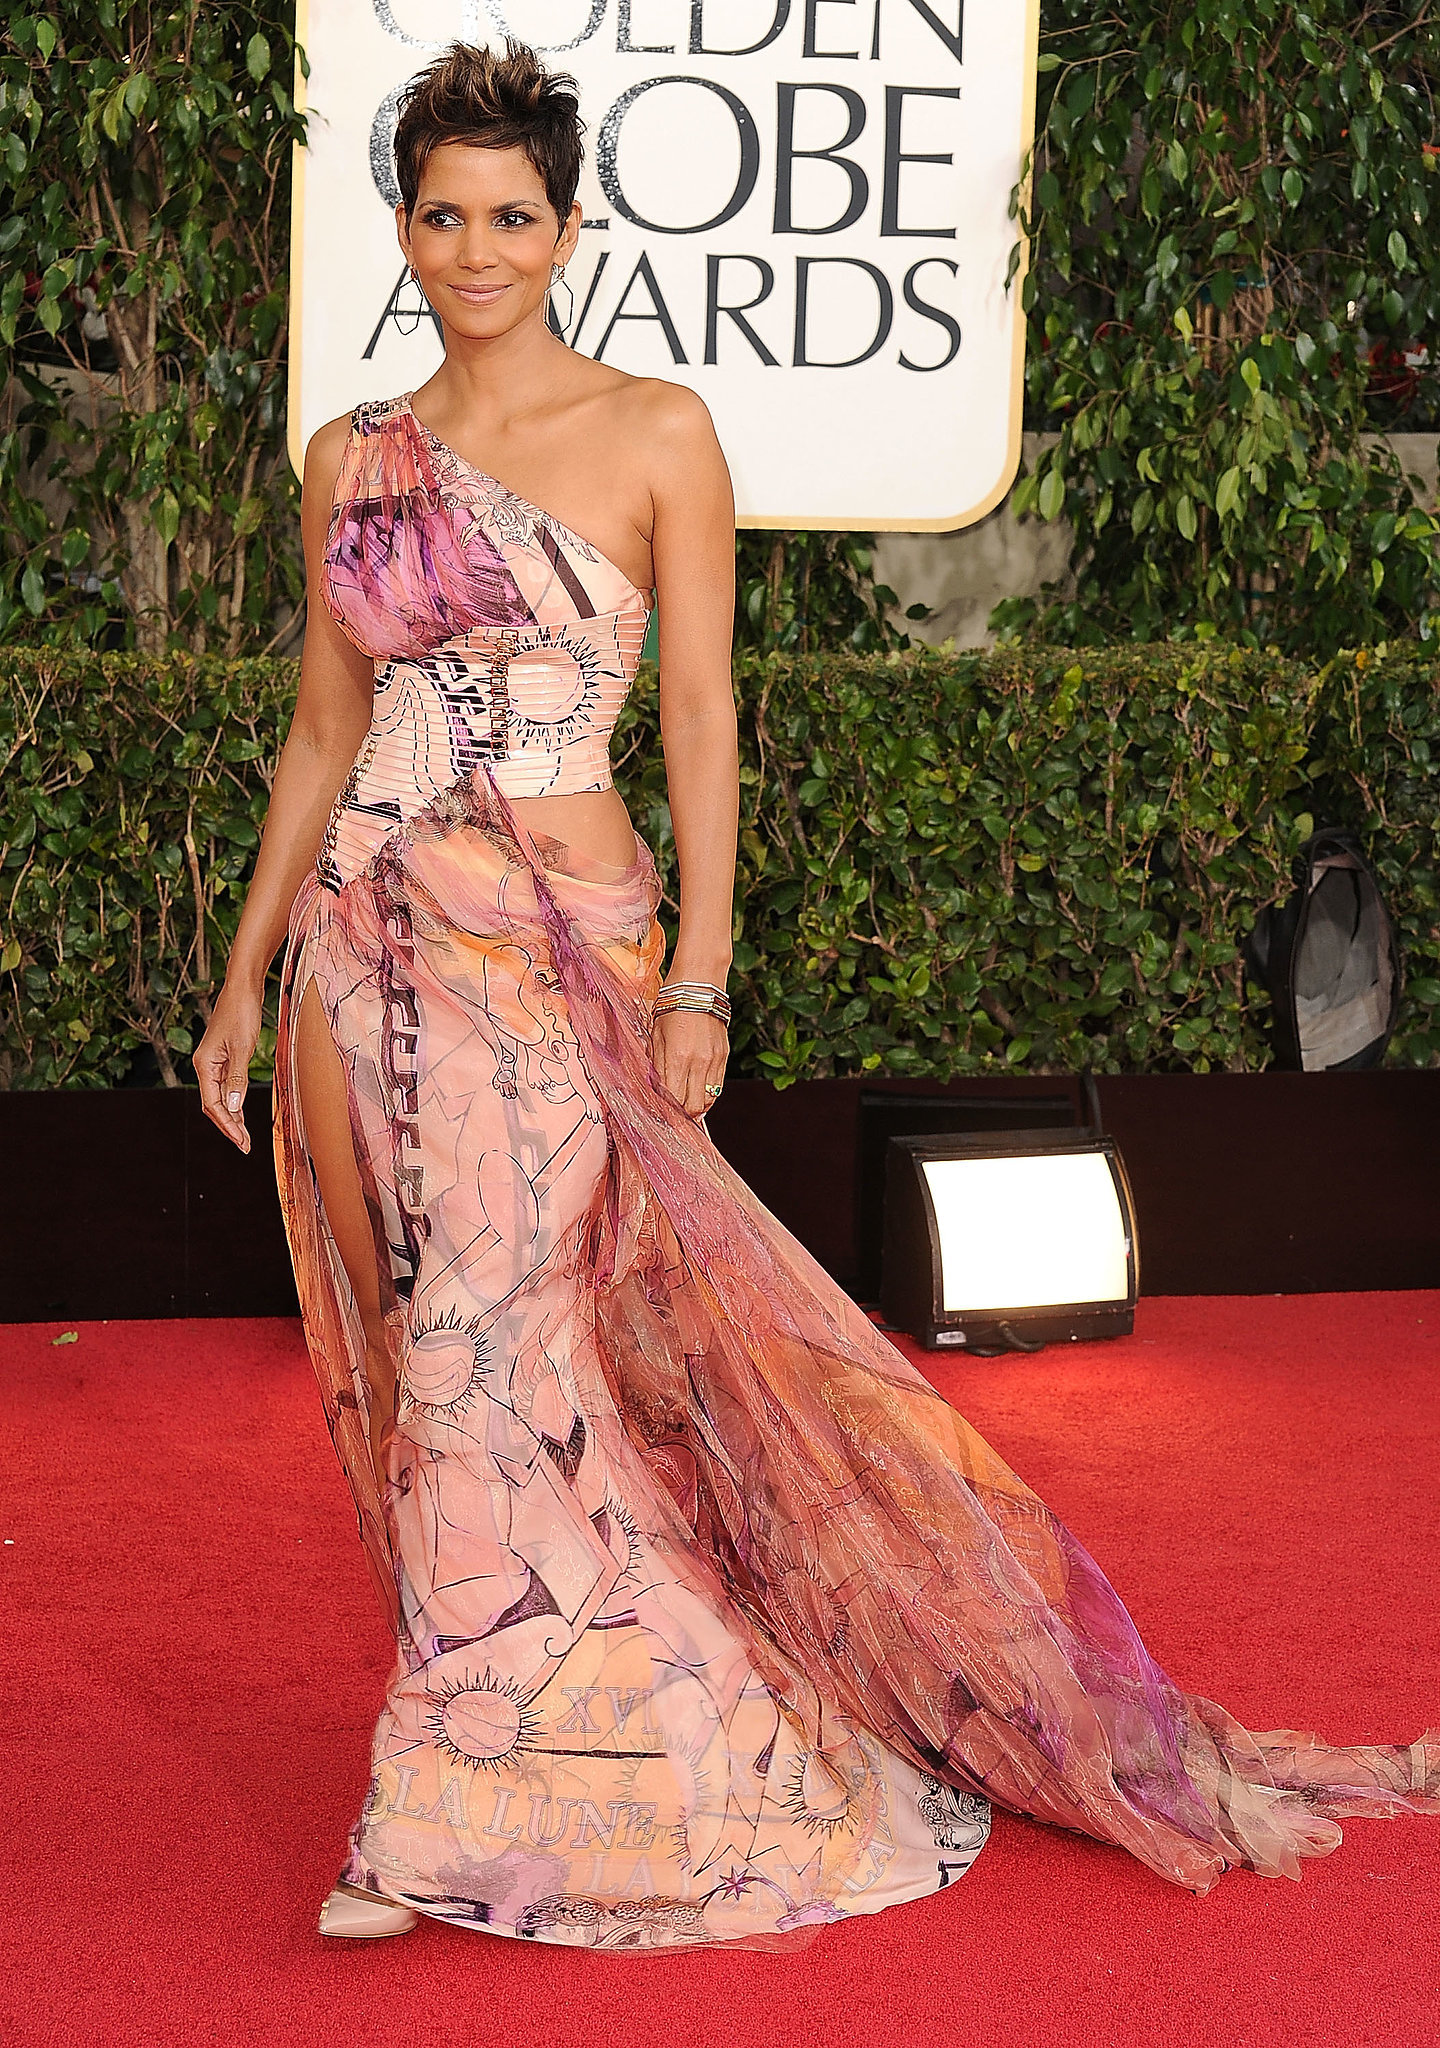 Halle Berry in Versace at the Golden Globe Awards